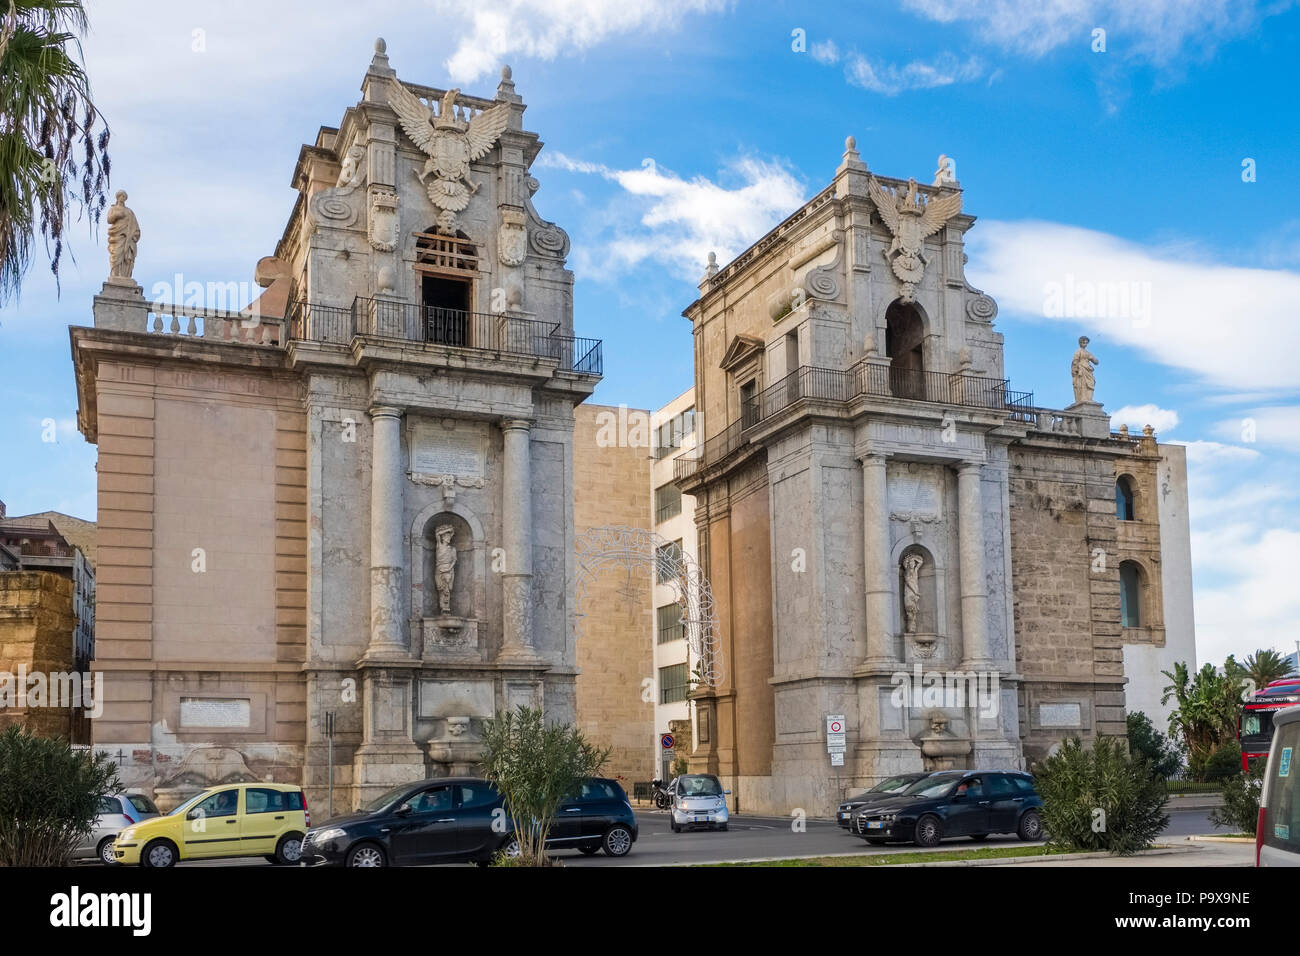 Porta Felice, a city gate in Palermo, Sicily, Italy, Europe - Stock Image